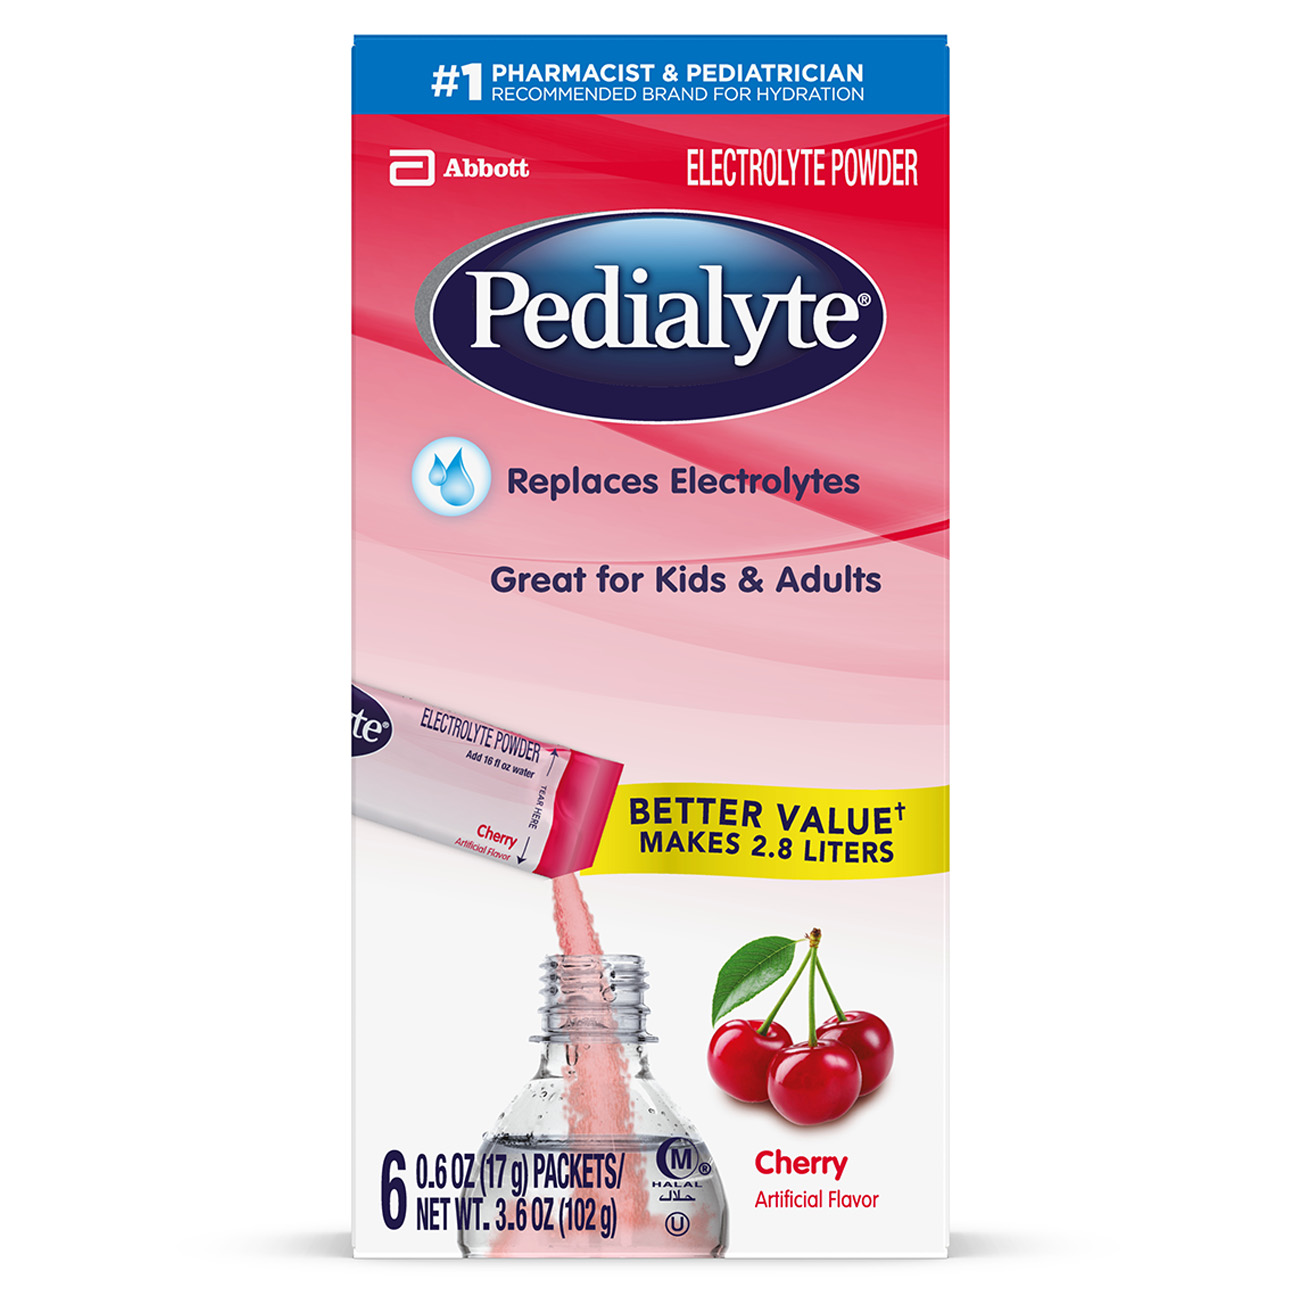 Pedialyte Electrolyte Powder Cherry Electrolyte Hydration Drink 0.6 oz Powder Packs (Pack of 36)